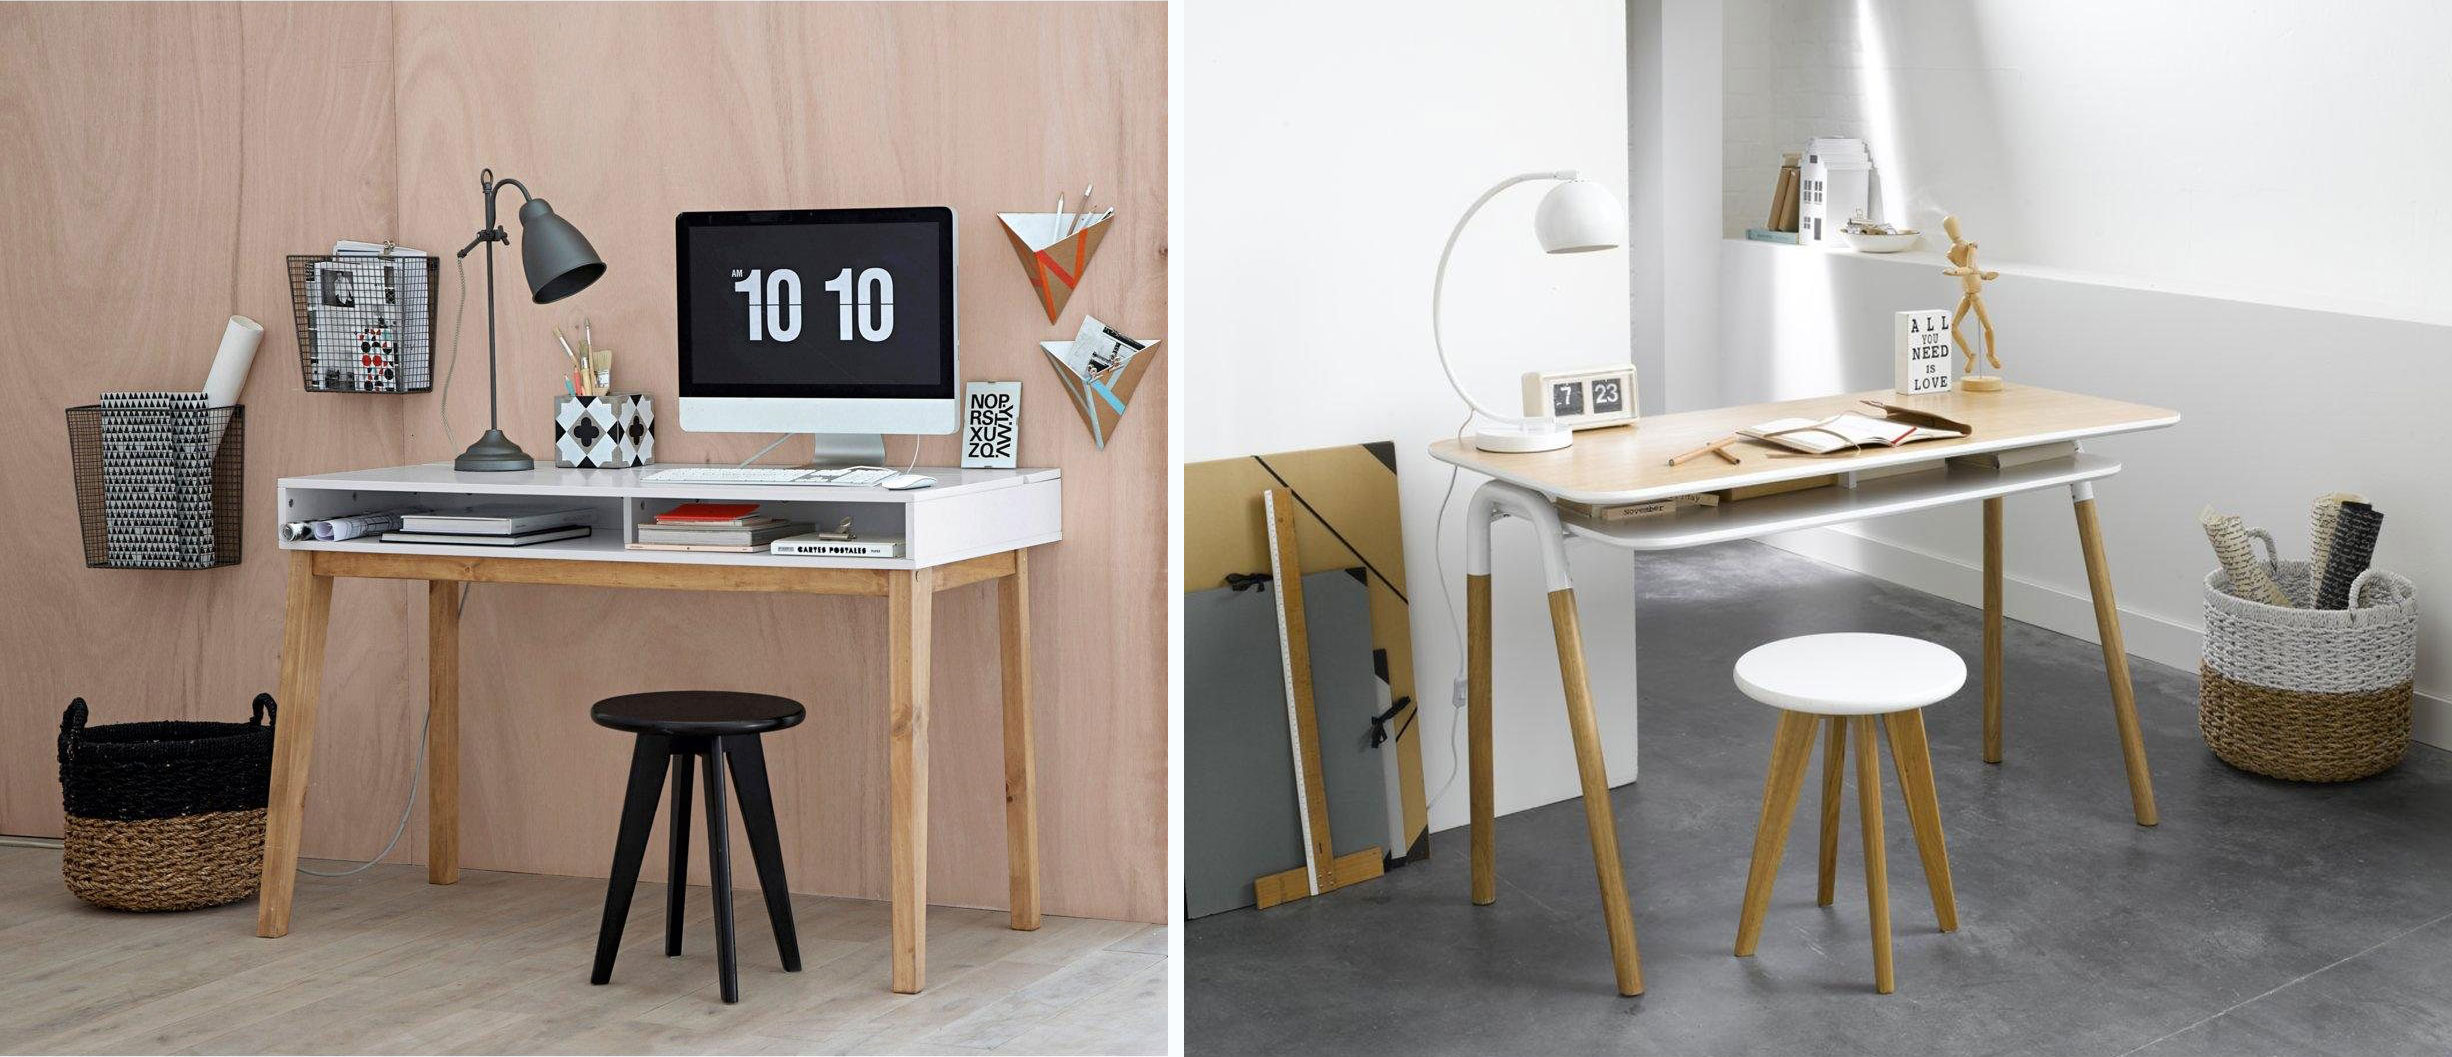 D co bureau style scandinave for La redoute maison et deco